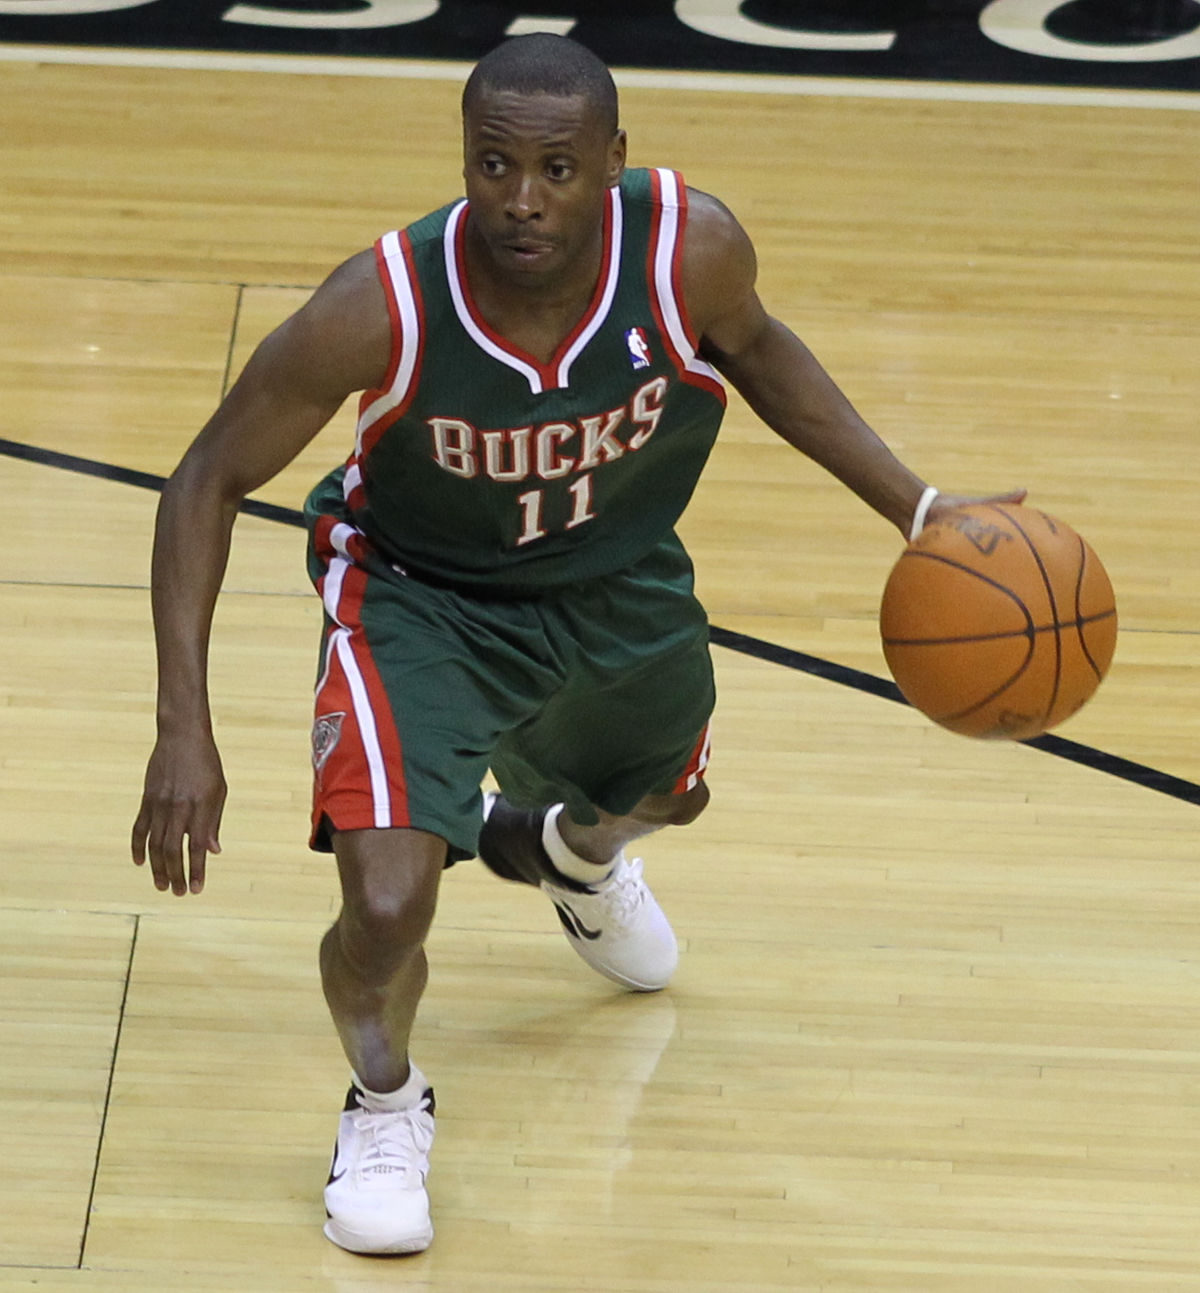 Nuggets Clippers Highlights: Earl Boykins